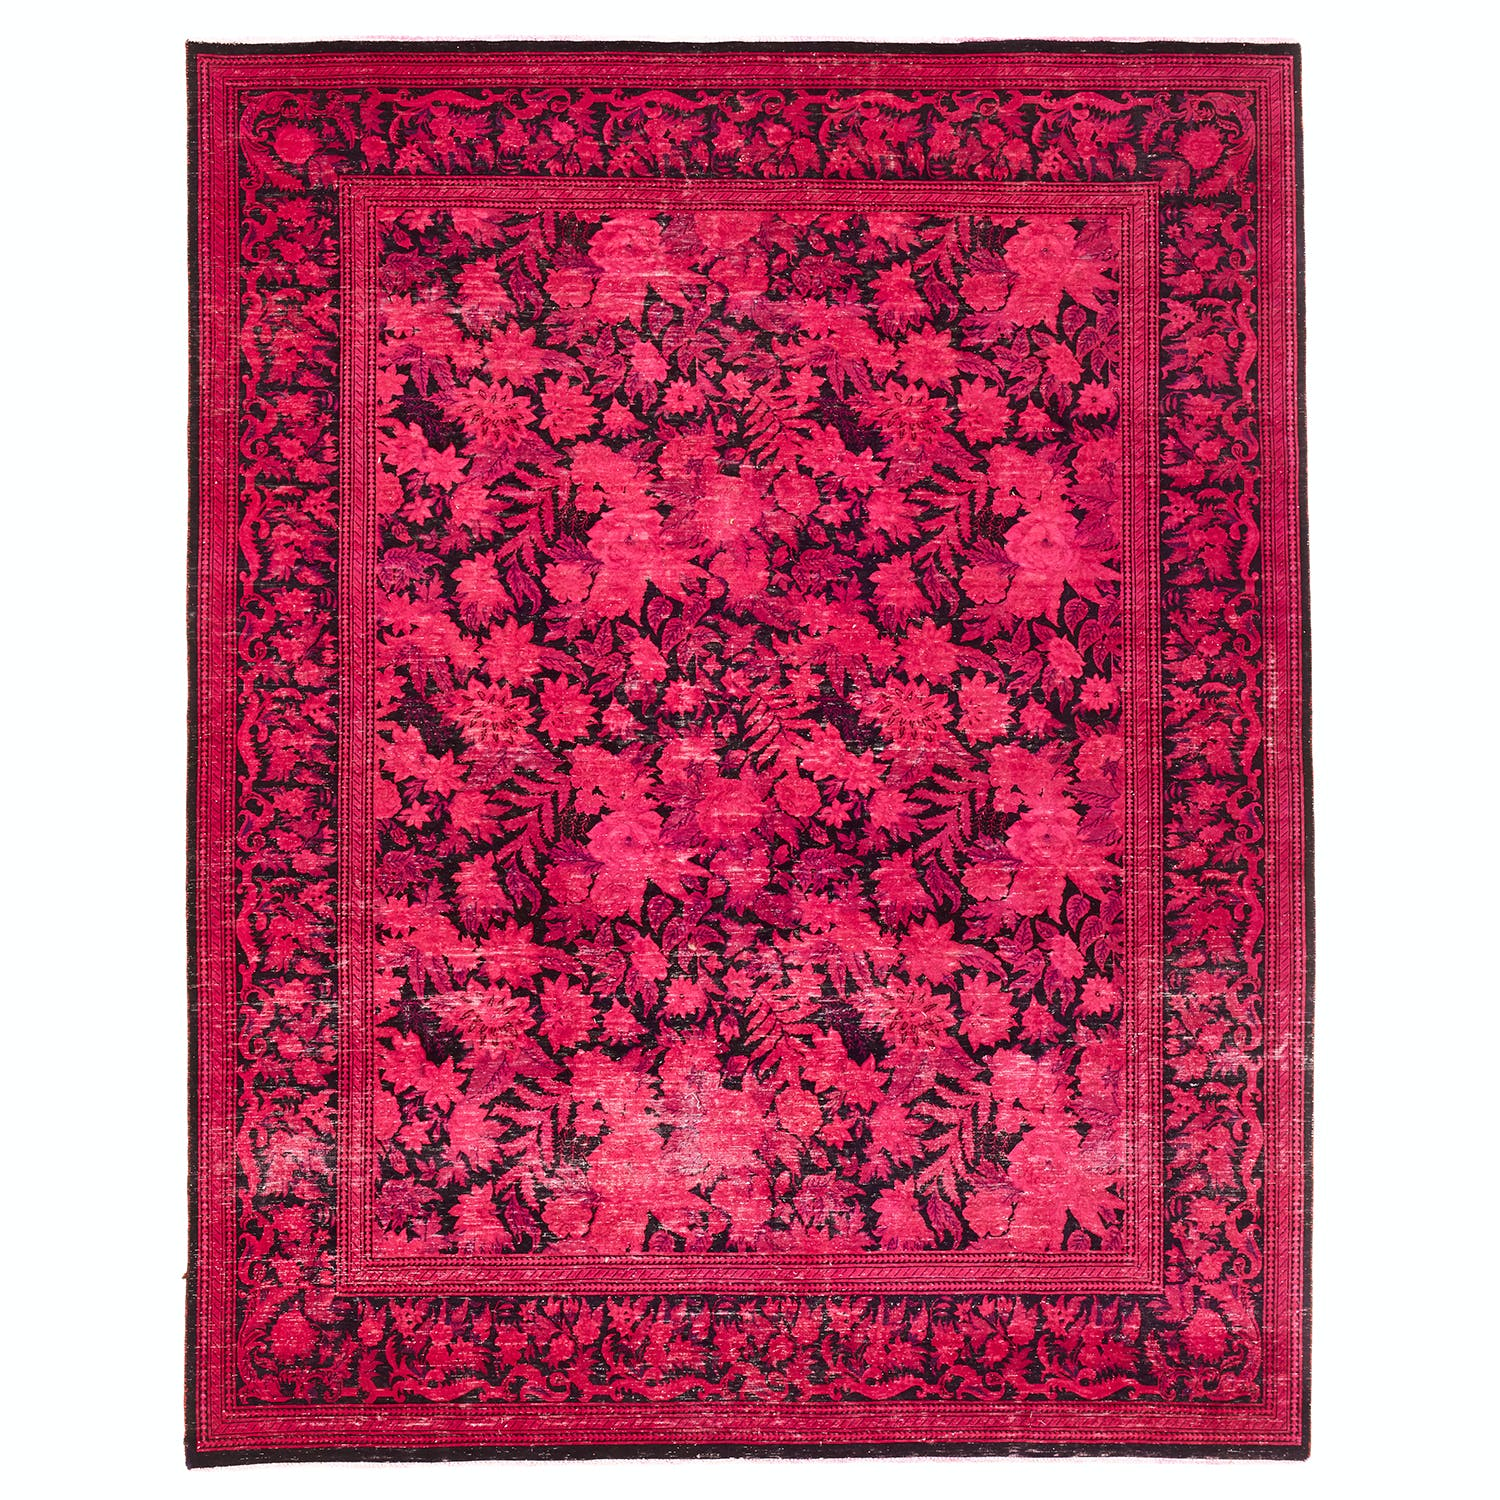 Product Image - Color Reform Rug - 8'x10'2""